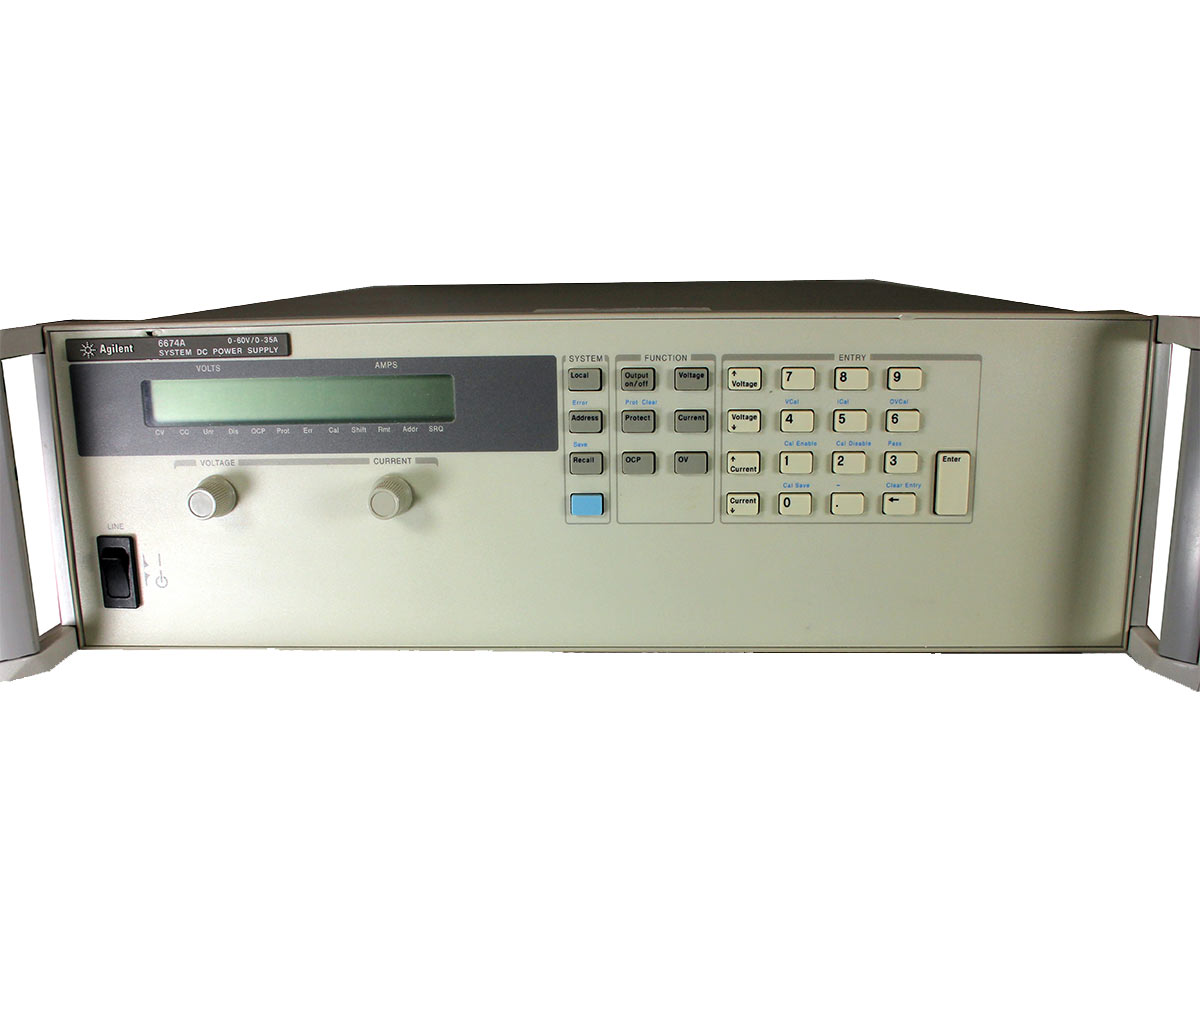 Keysight (Formerly Agilent) 6674A